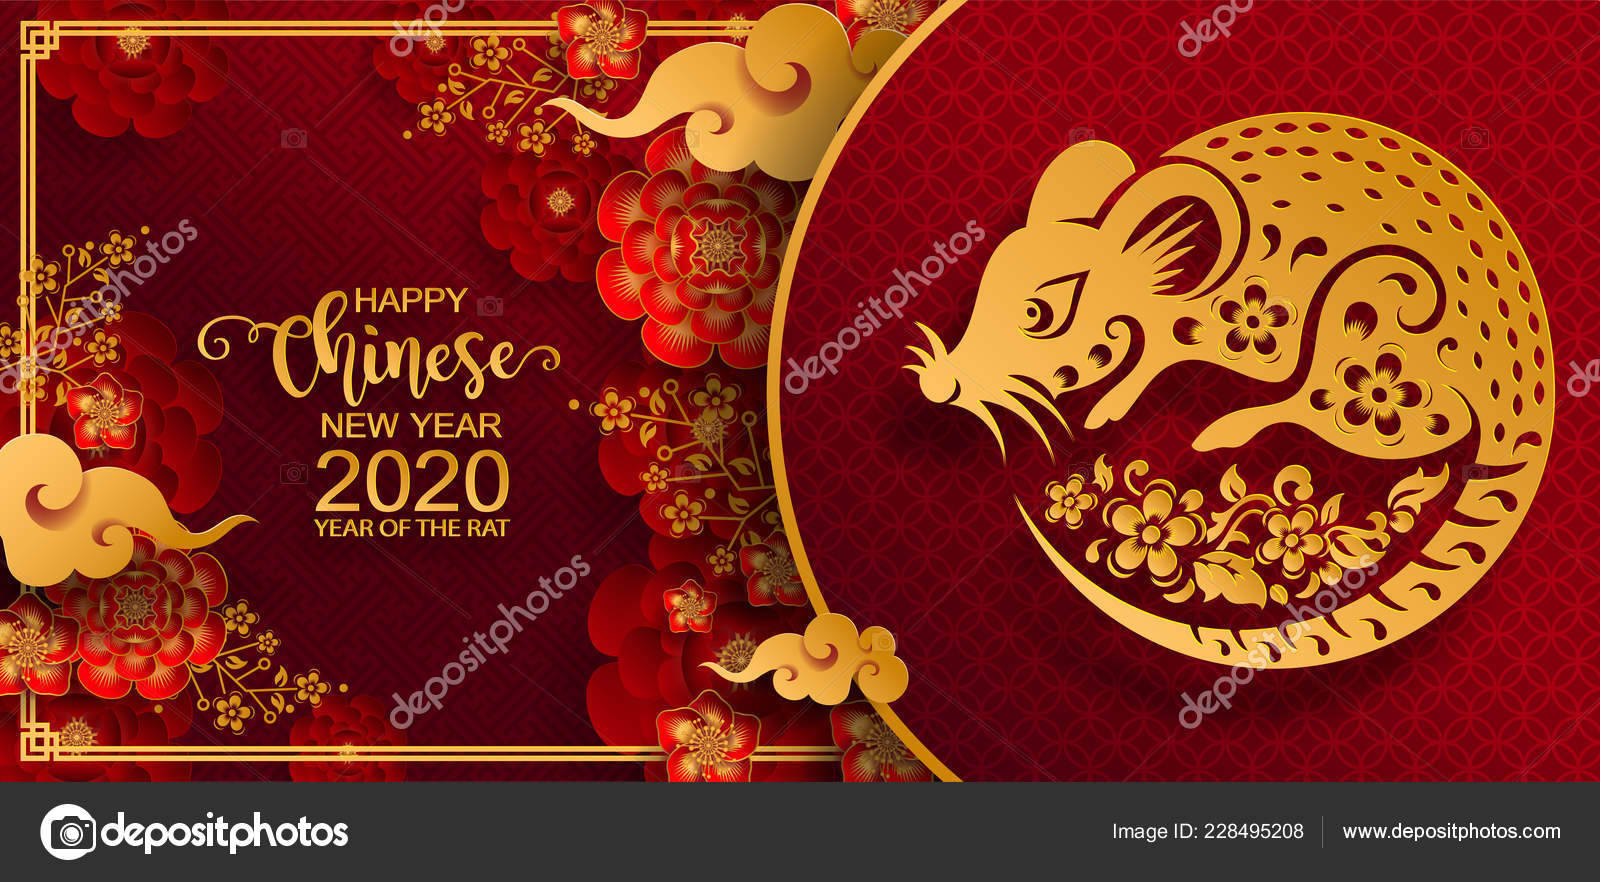 Chinese New Year 2020 Events Happy Chinese New Year 2020 Zodiac Sign Gold Rat Paper — Stock